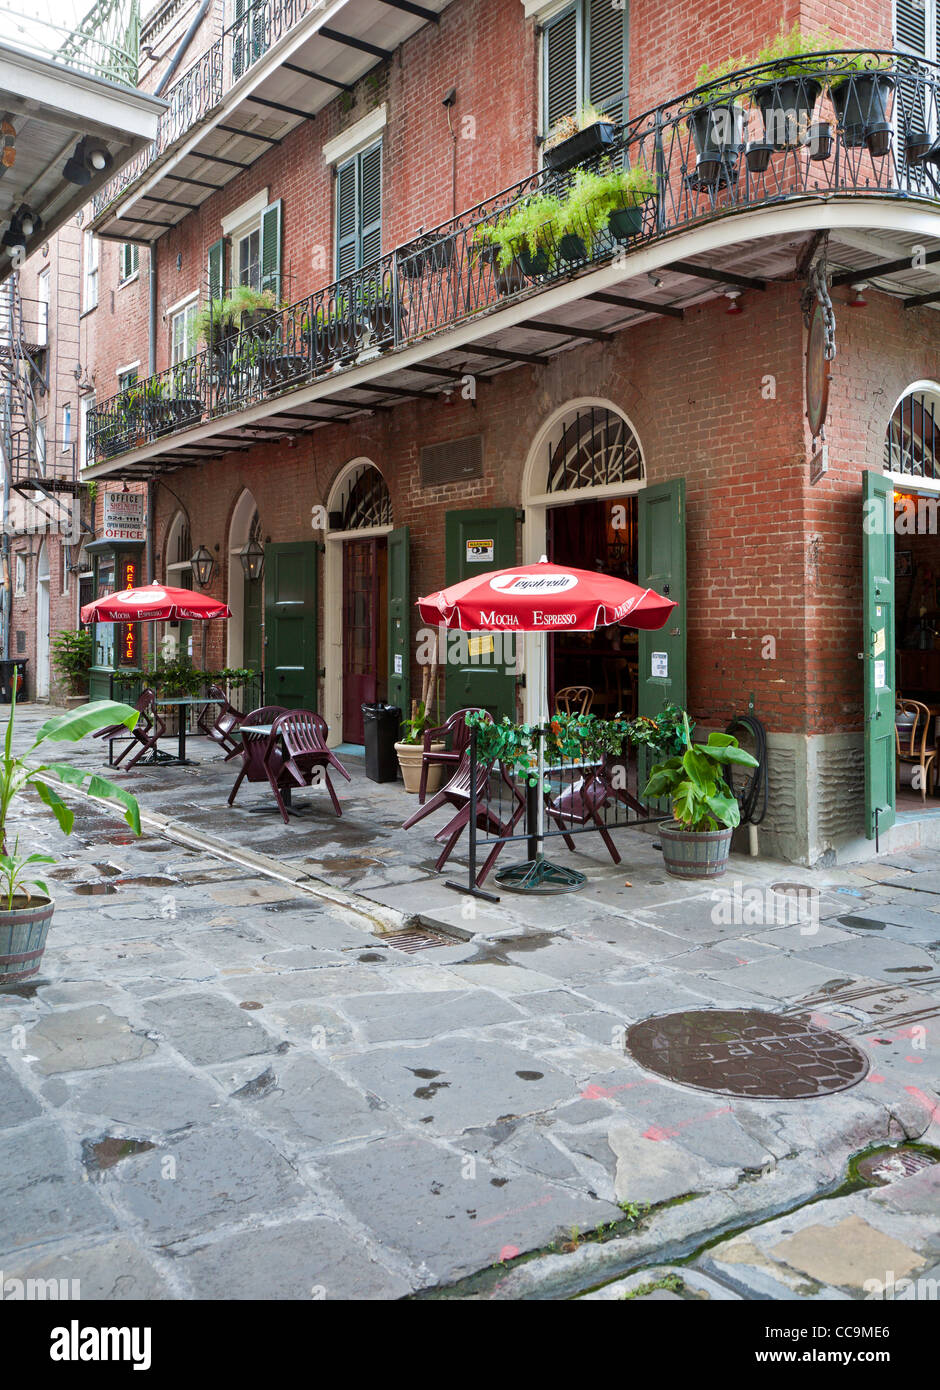 Tony sevilles pirates alley cafe with outdoor seating along st peter street in the french quarter of new orleans la